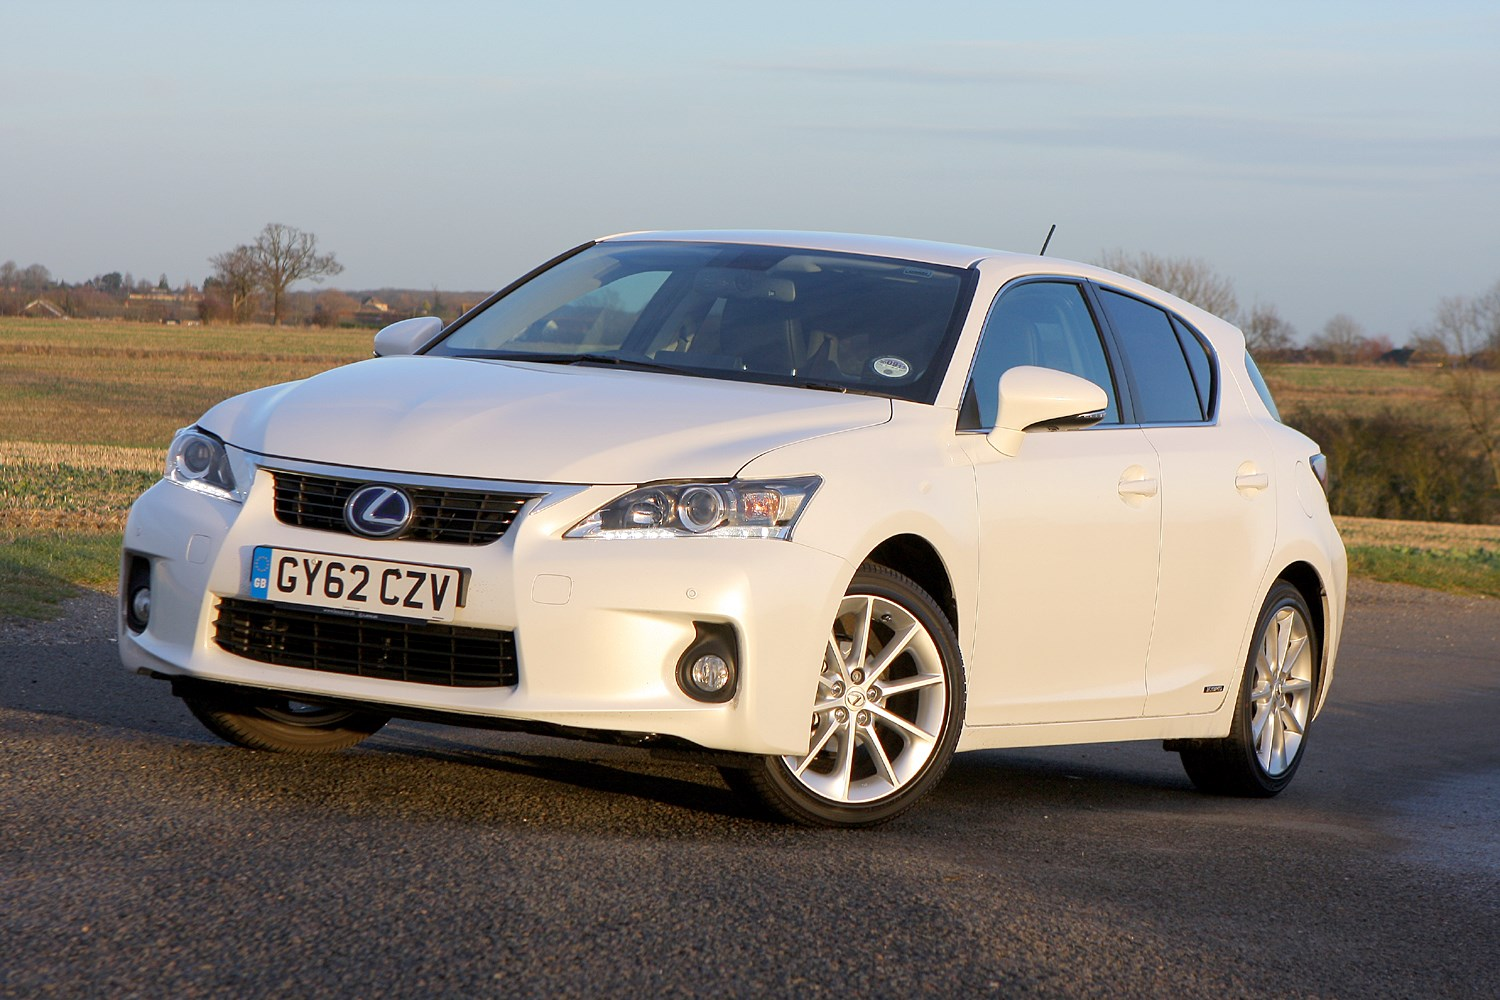 Used Lexus For Sale In Ct >> Lexus CT Hatchback (2011 - ) Photos | Parkers